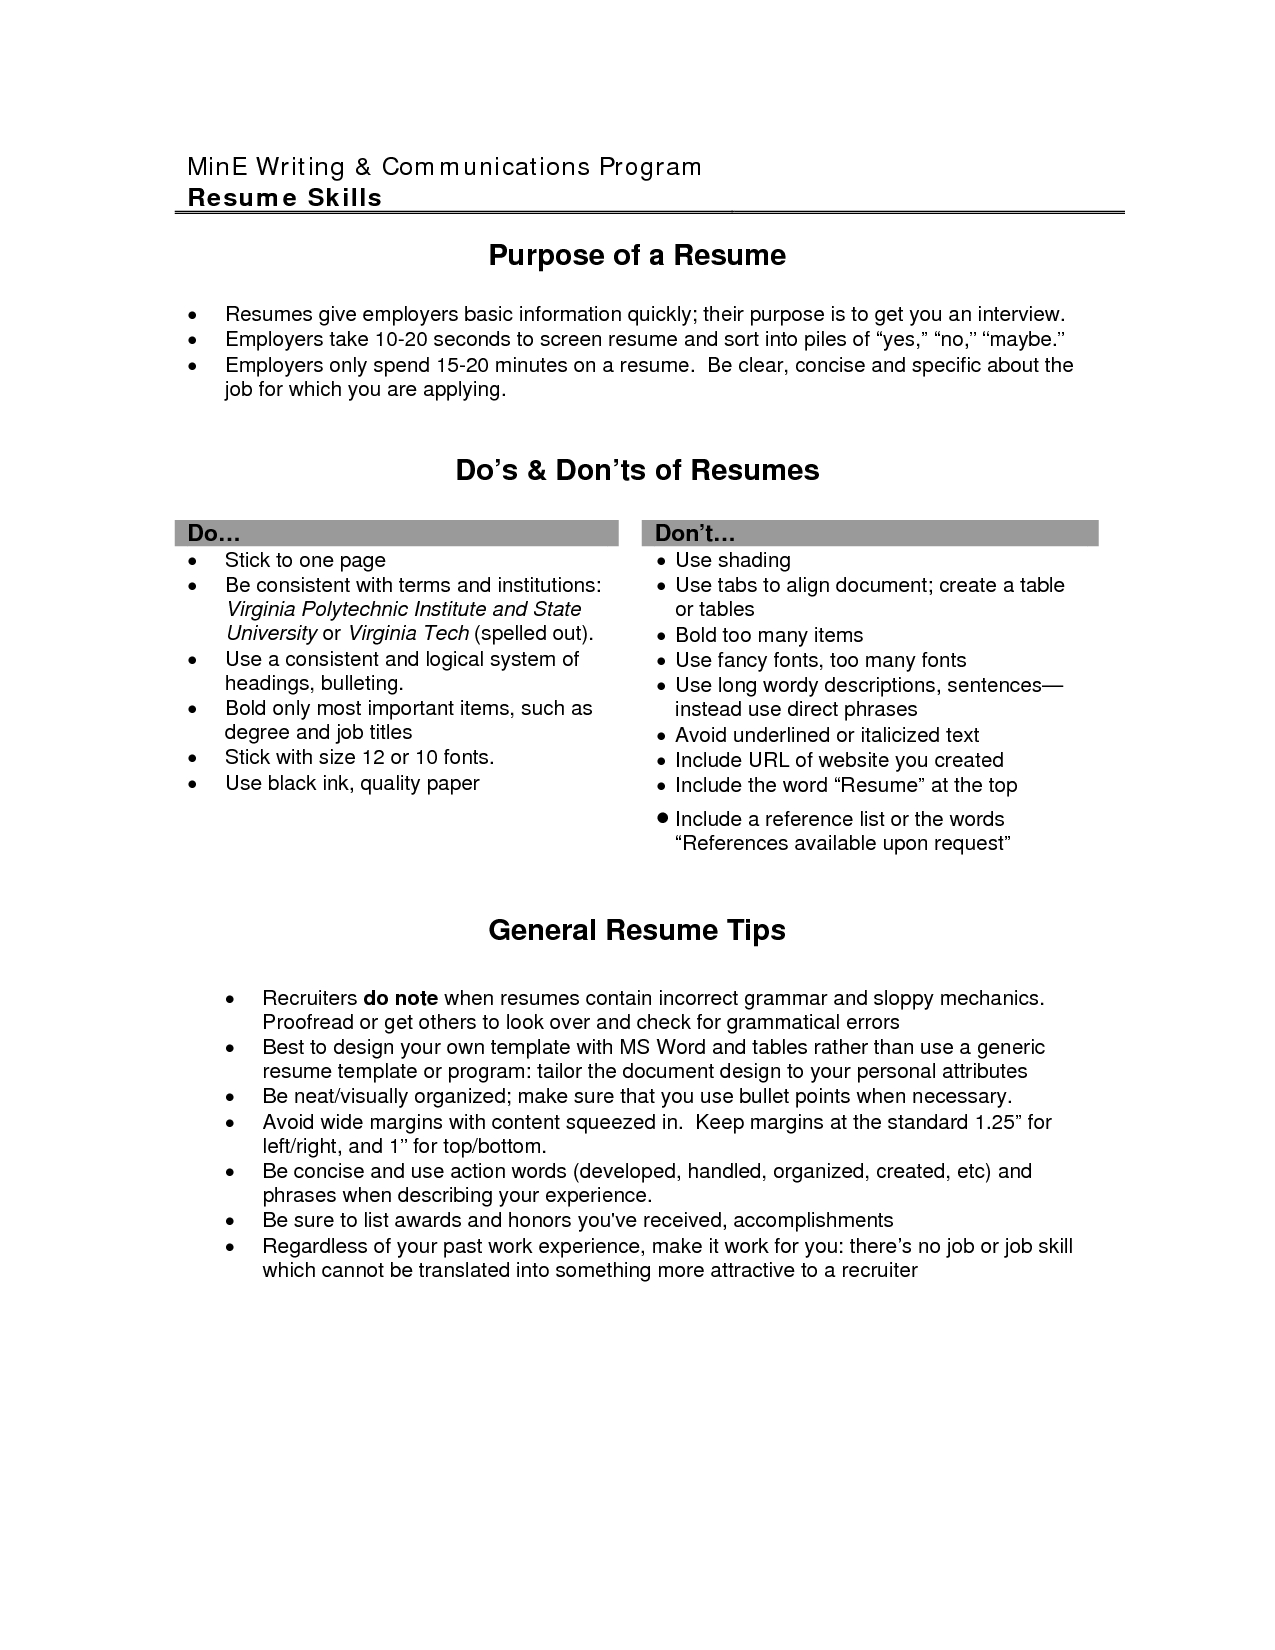 free resume objective examples resume objective free resume templates management career objective best resumes ever 93 - Free Resumes For Employers